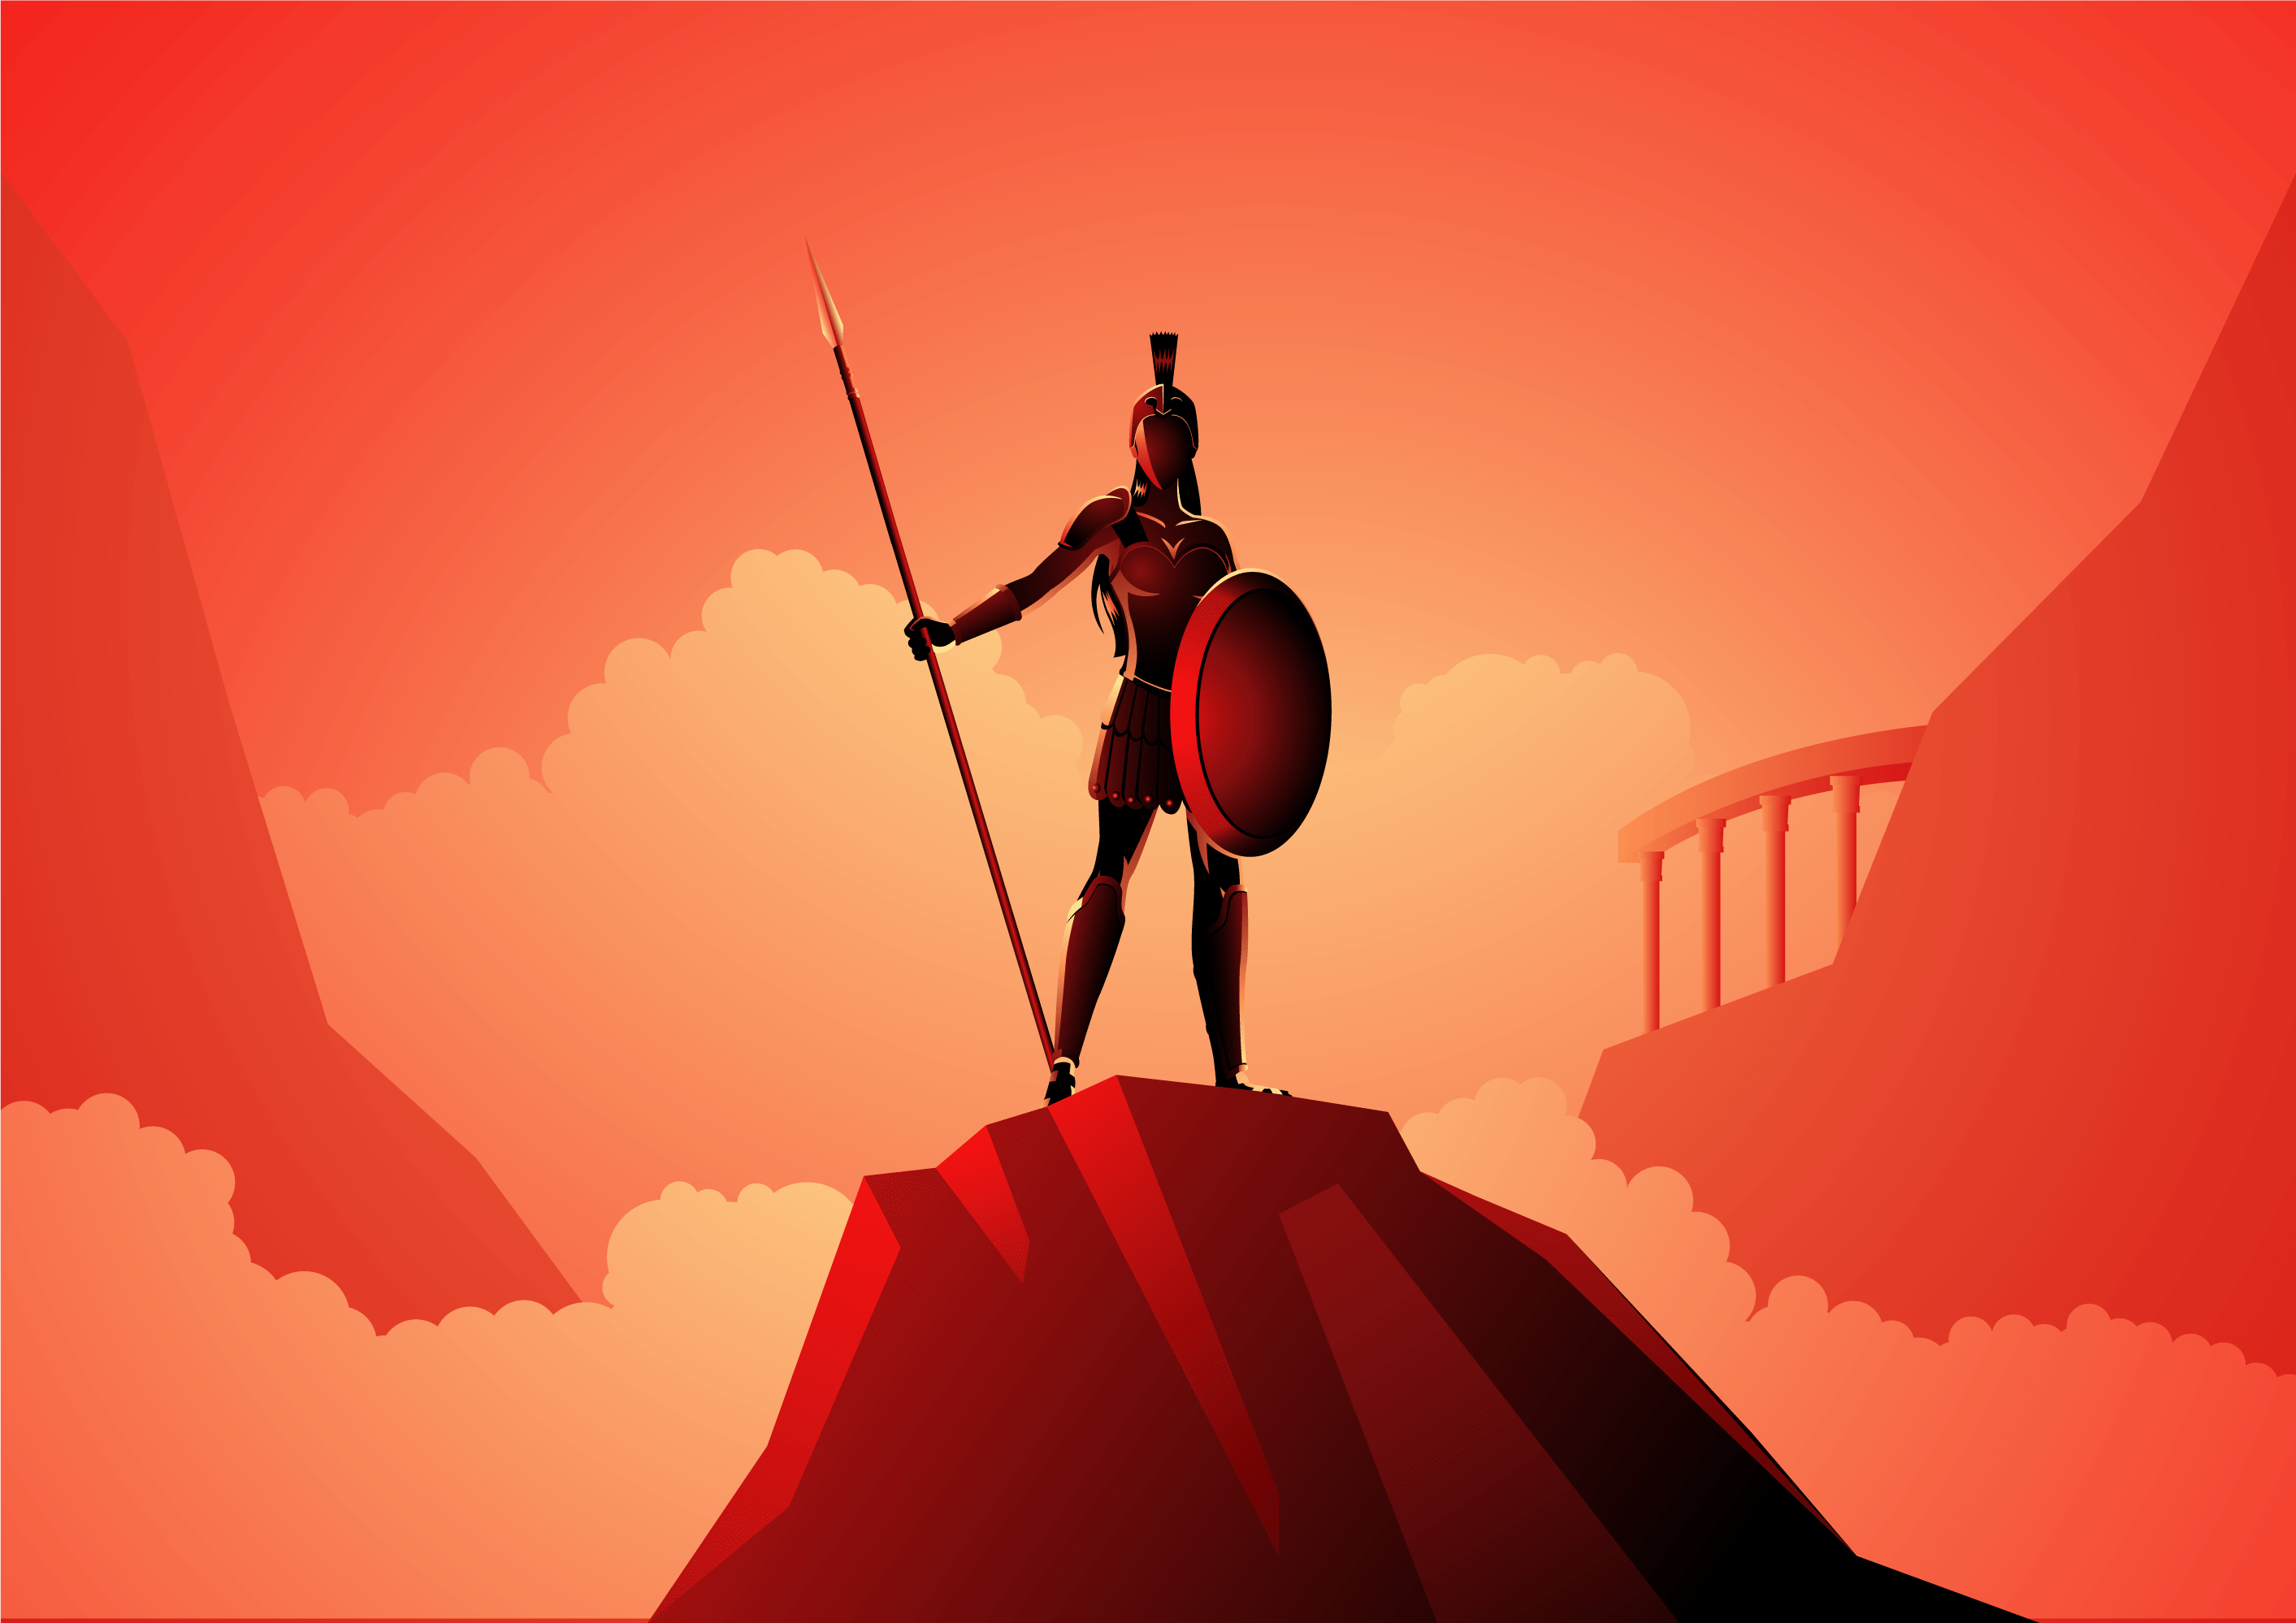 Athena the Greek Goddess of Civilization War and Wisdom Depicted on Top of a Hill